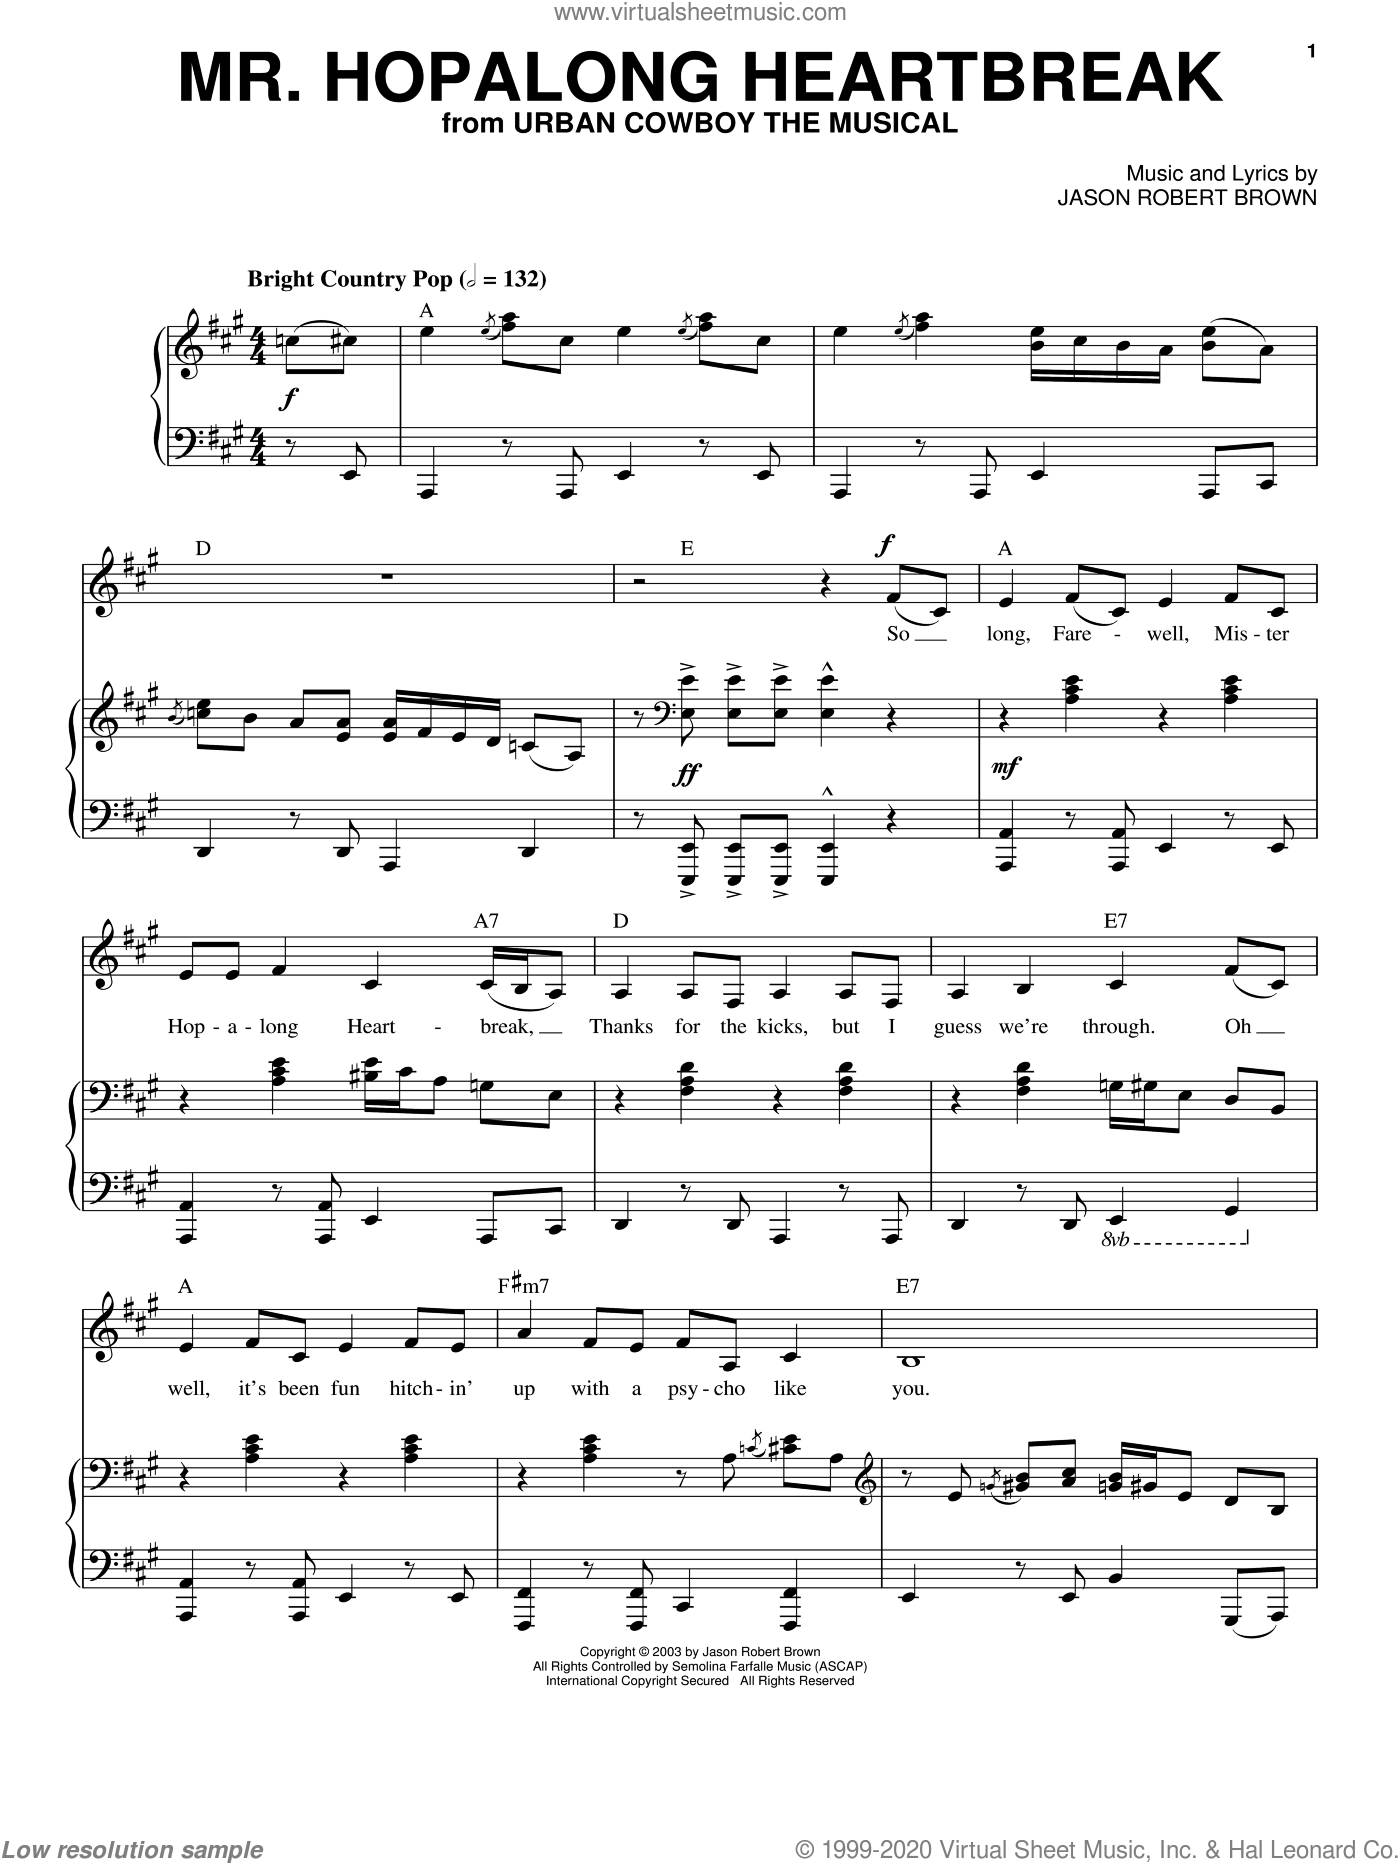 Mr. Hopalong Heartbreak sheet music for voice and piano by Jason Robert Brown and Urban Cowboy (Musical), intermediate skill level